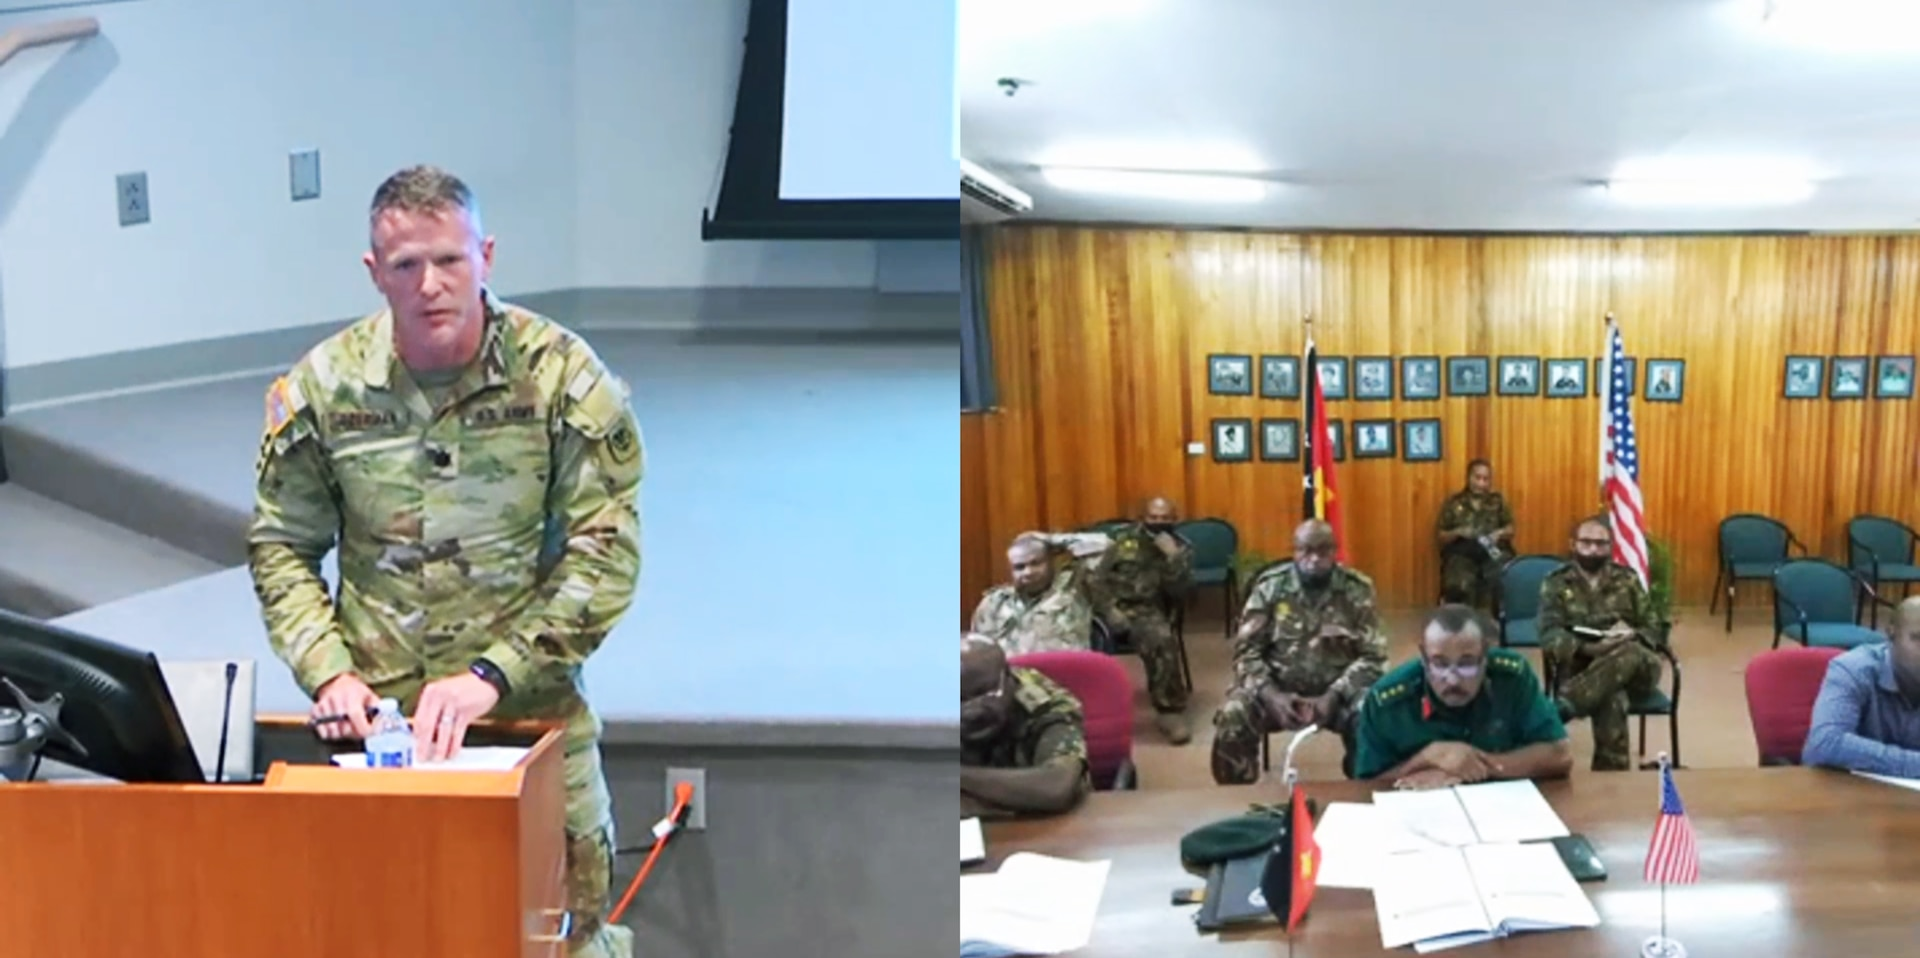 Lt. Col. Brion Aderman, Wisconsin National Guard director of domestic operations, talks about disaster response practices with members of the Papua New Guinea Defense Force May 26, 2021, during a virtual, three-day State Partnership Program workshop with Papua New Guinea in Witmer Hall at Joint Force Headquarters in Madison, Wis. The State Partnership Program links individual states with armed forces of partner nations around the world to forge mutually beneficial relationships.